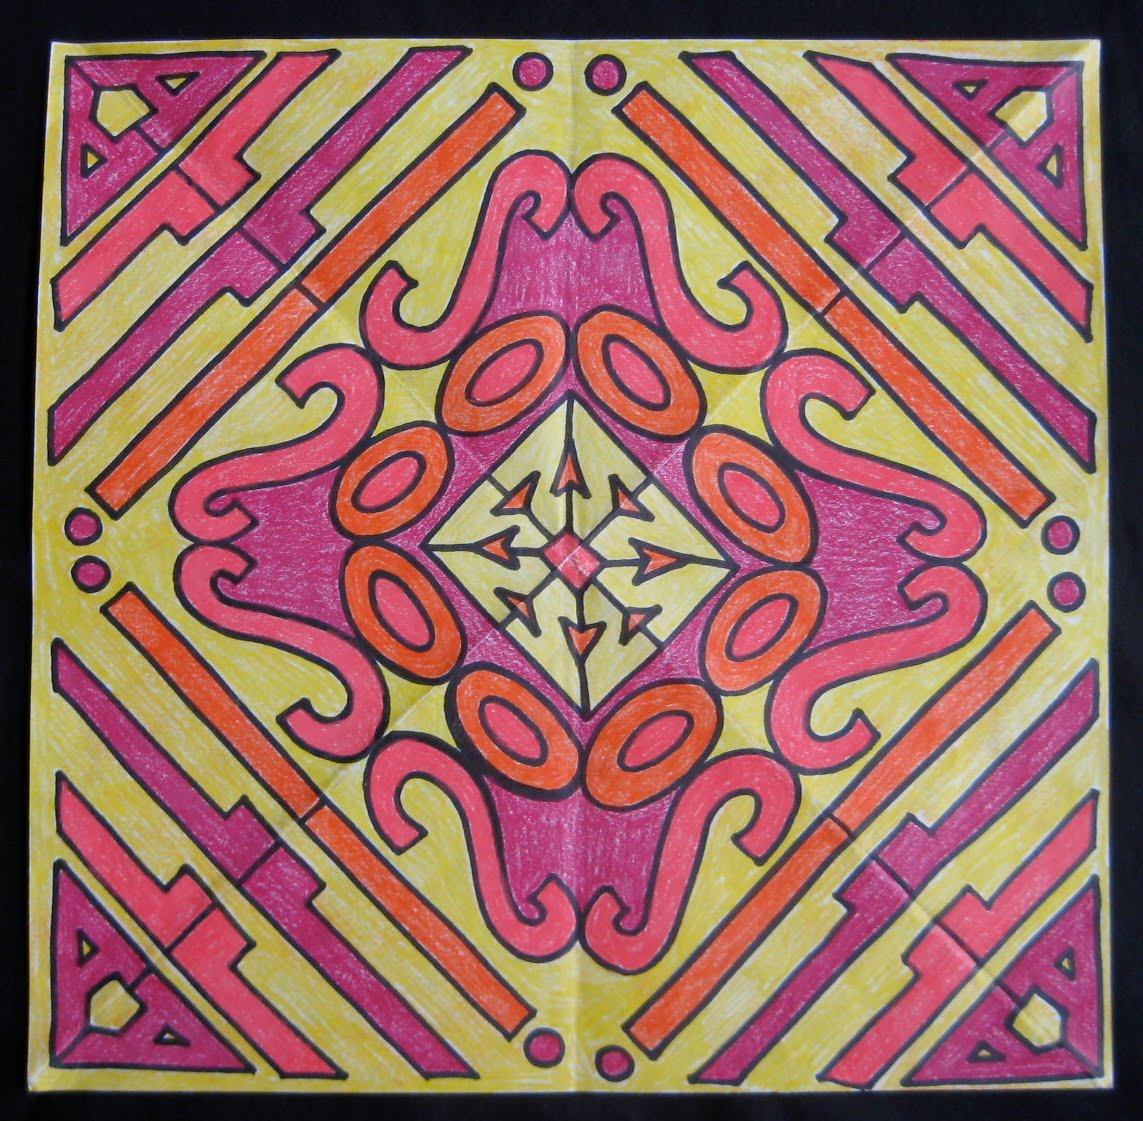 kaleidoscope designs grade projects teachkidsart symmetry project lettering radial warm colors pattern different cool names symmetrical lessons math paper geometry